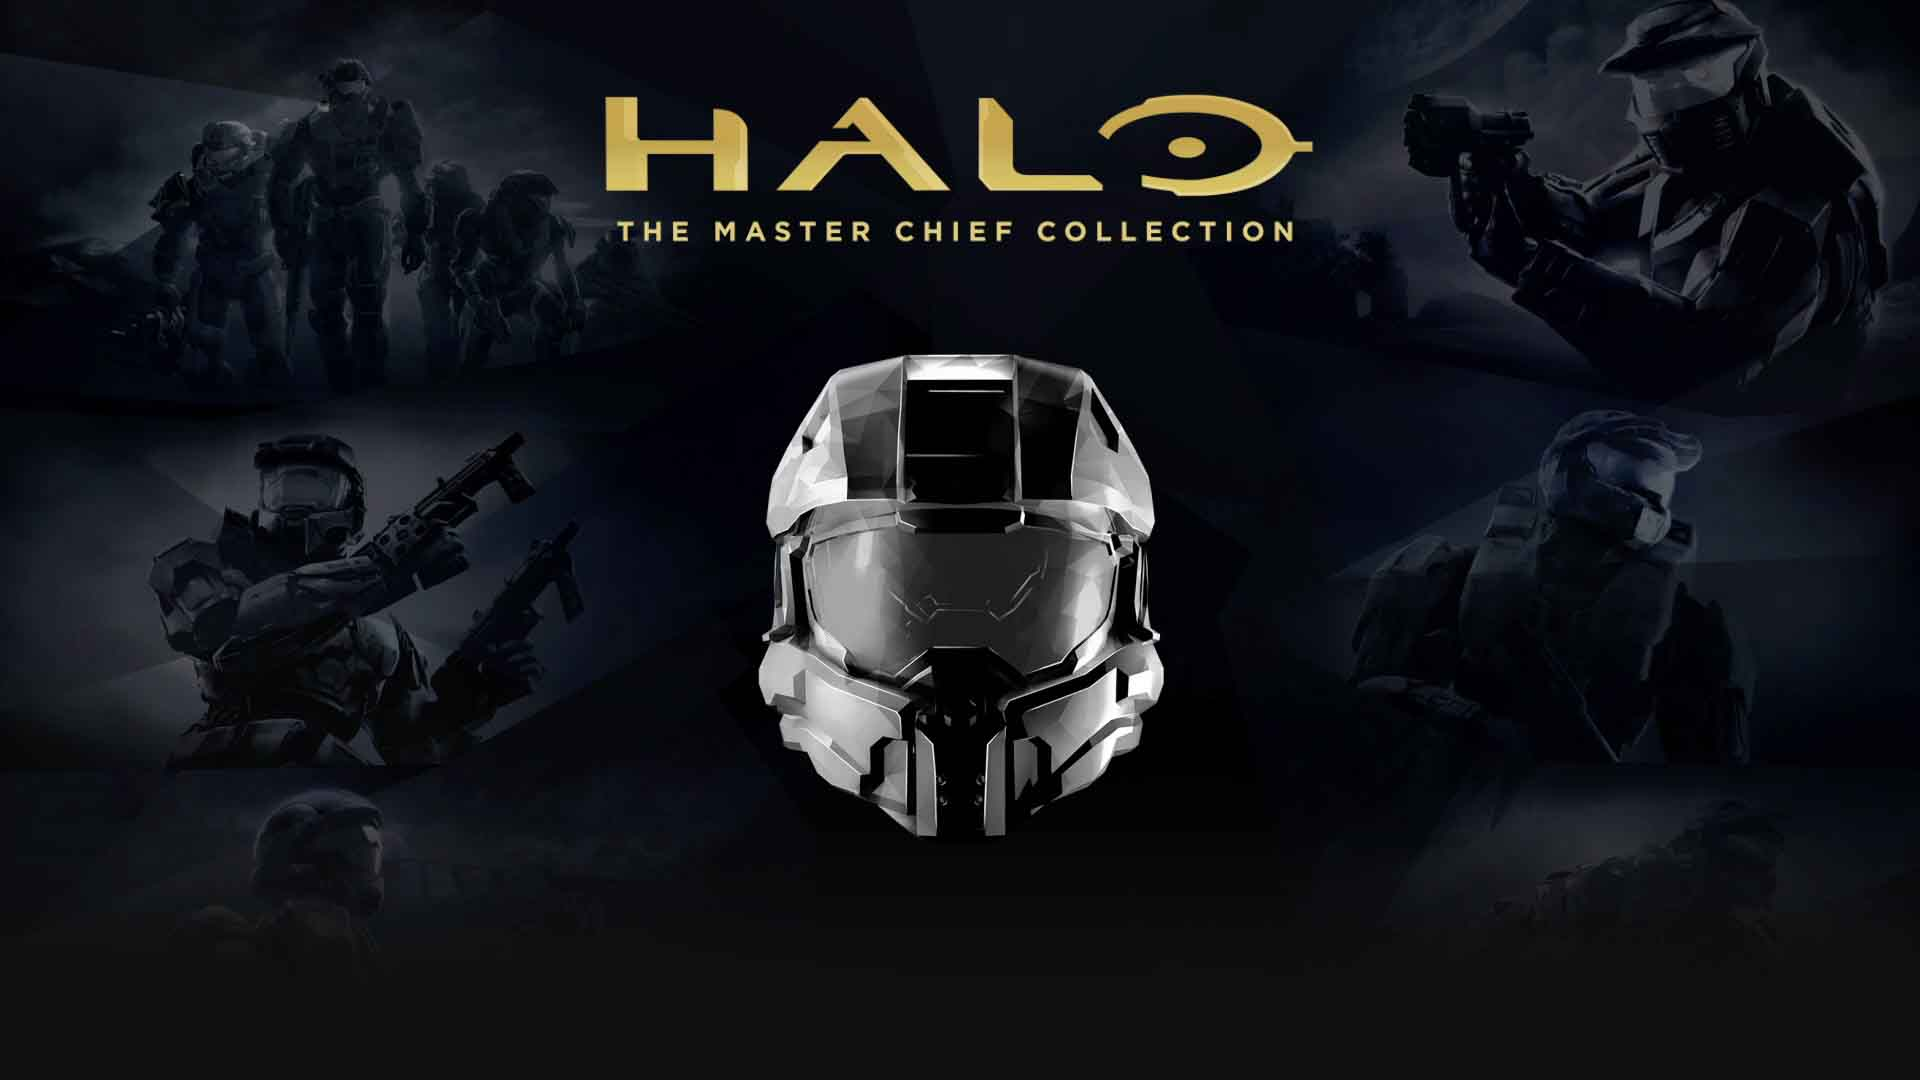 Fix Halo The Master Chief Collection Easy Anti-Cheat Untrusted System File